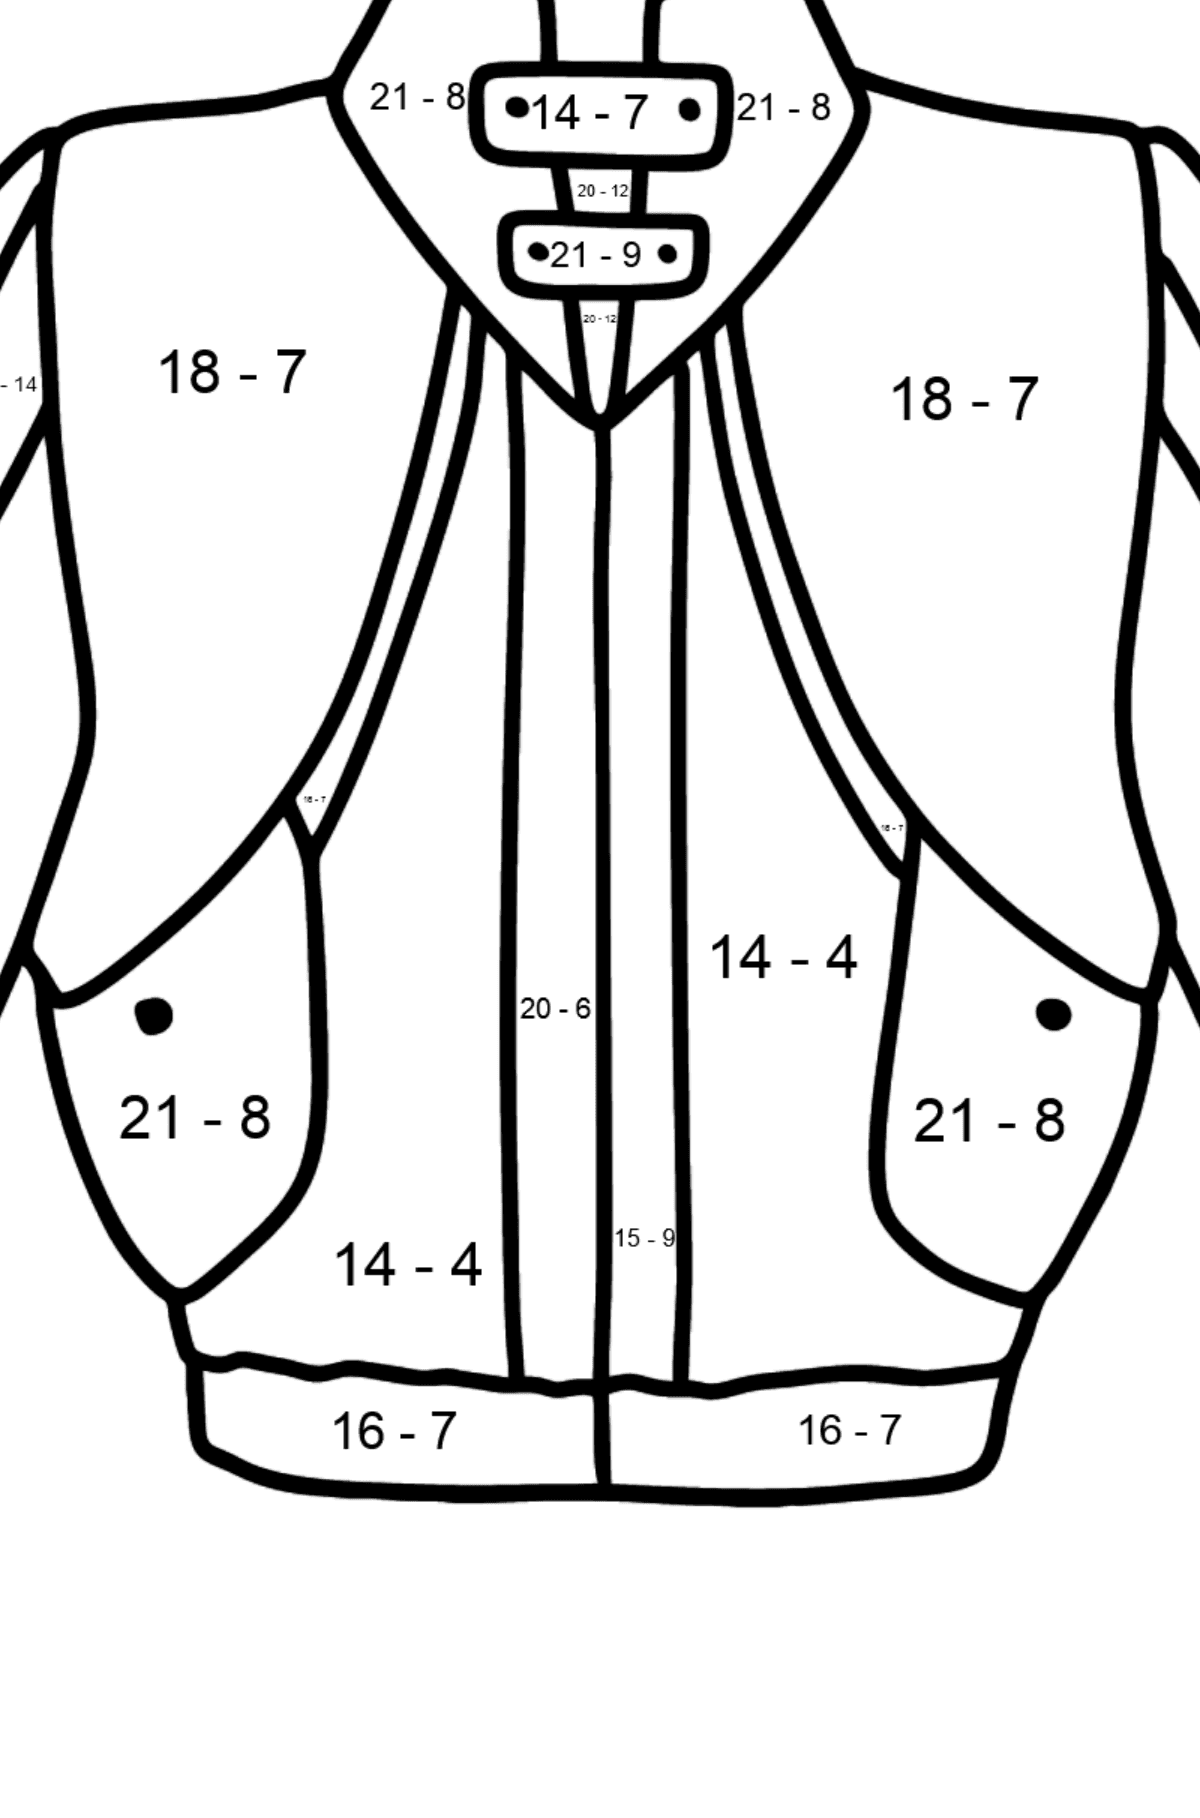 Jacket coloring page - Math Coloring - Subtraction for Kids